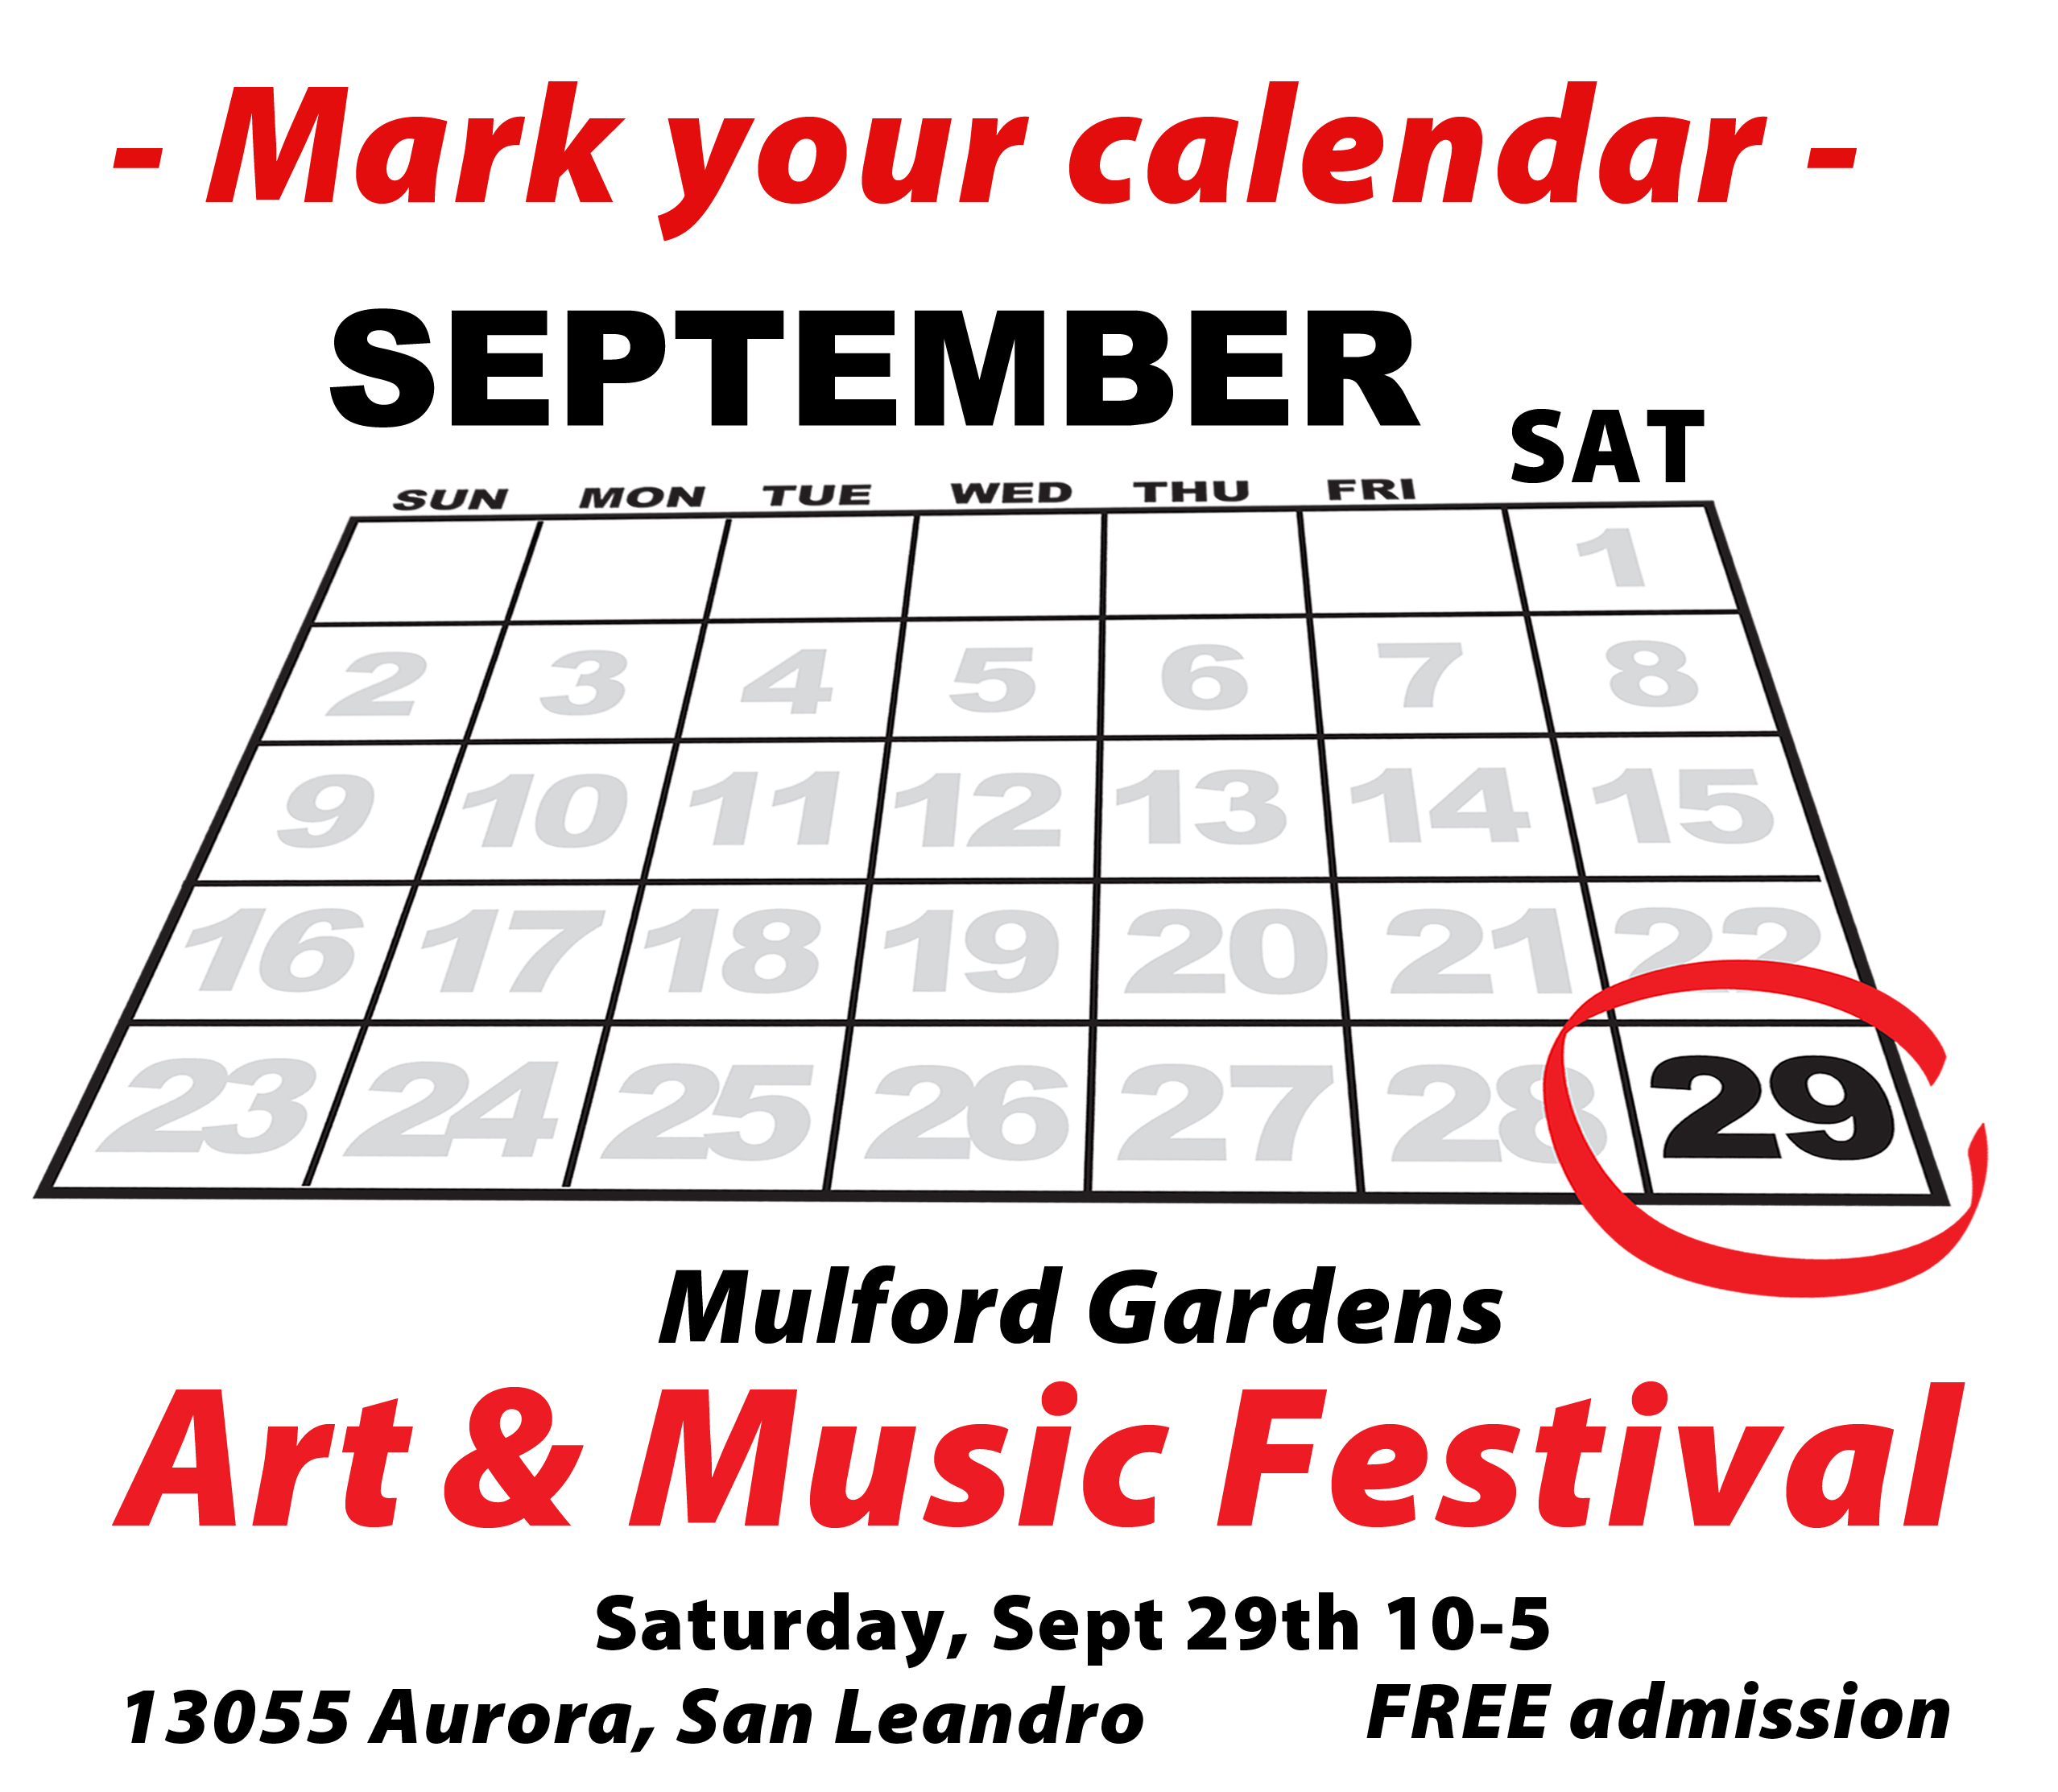 Mark Your Calendar Clip Art Along with all my art.